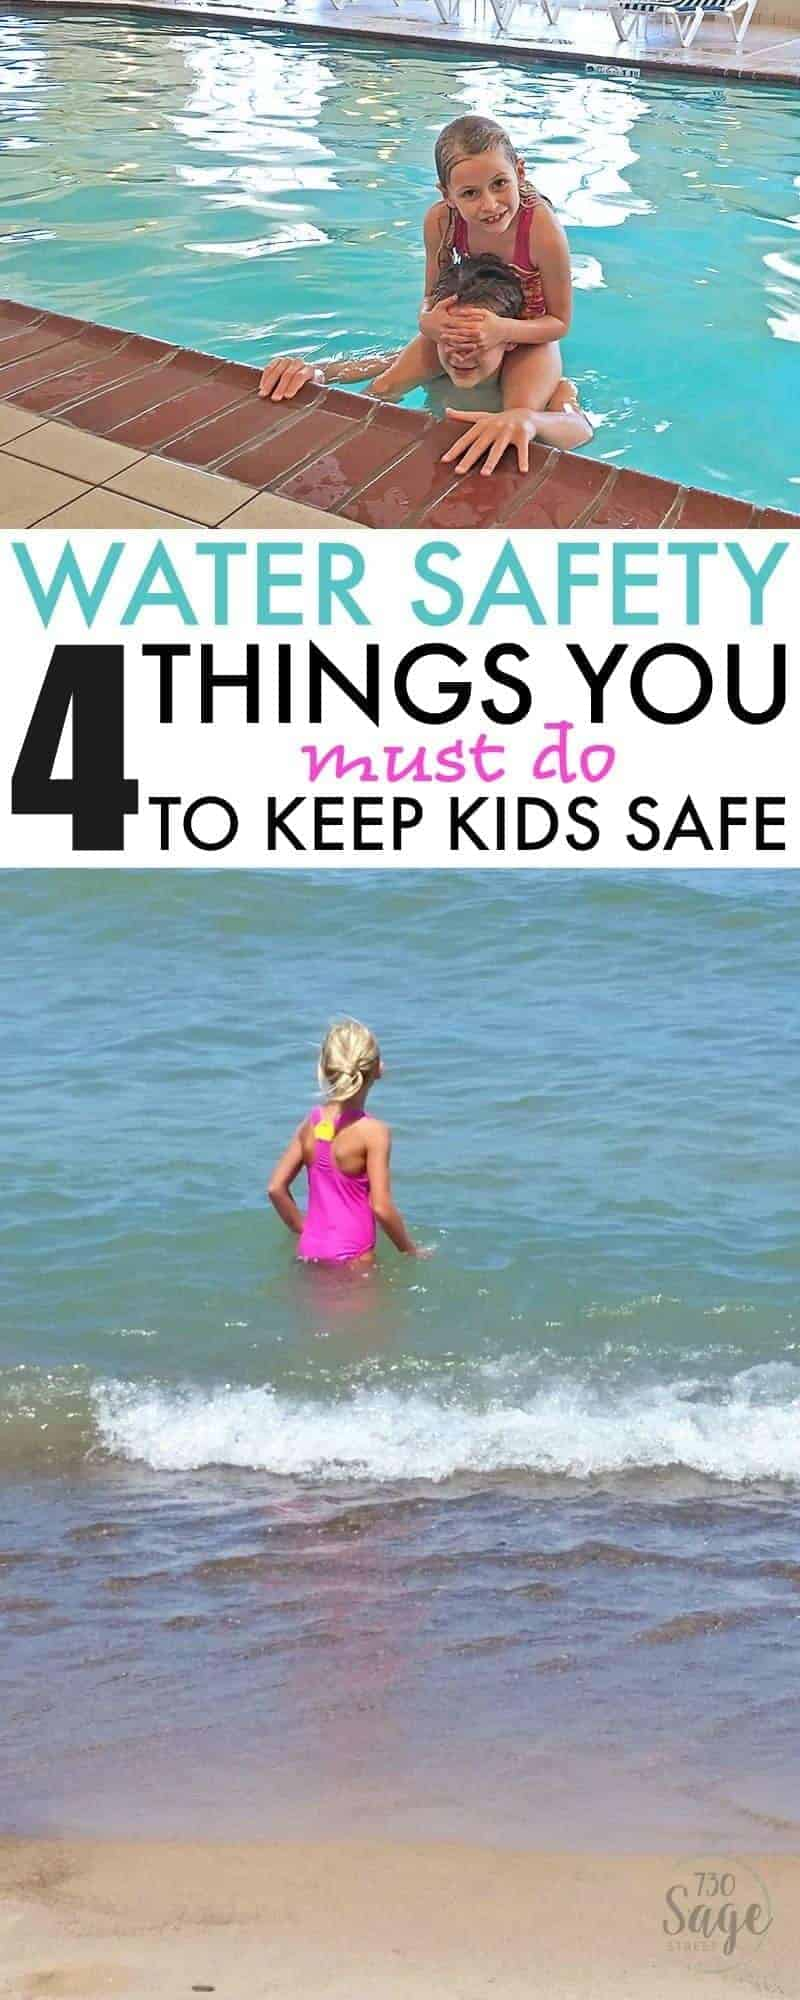 Keeping kids safer around the water is as simple as remembering your A, B, C, & D's. Learn 4 Water Safety Things You MUST Do to Keep Kids Safe this summer.